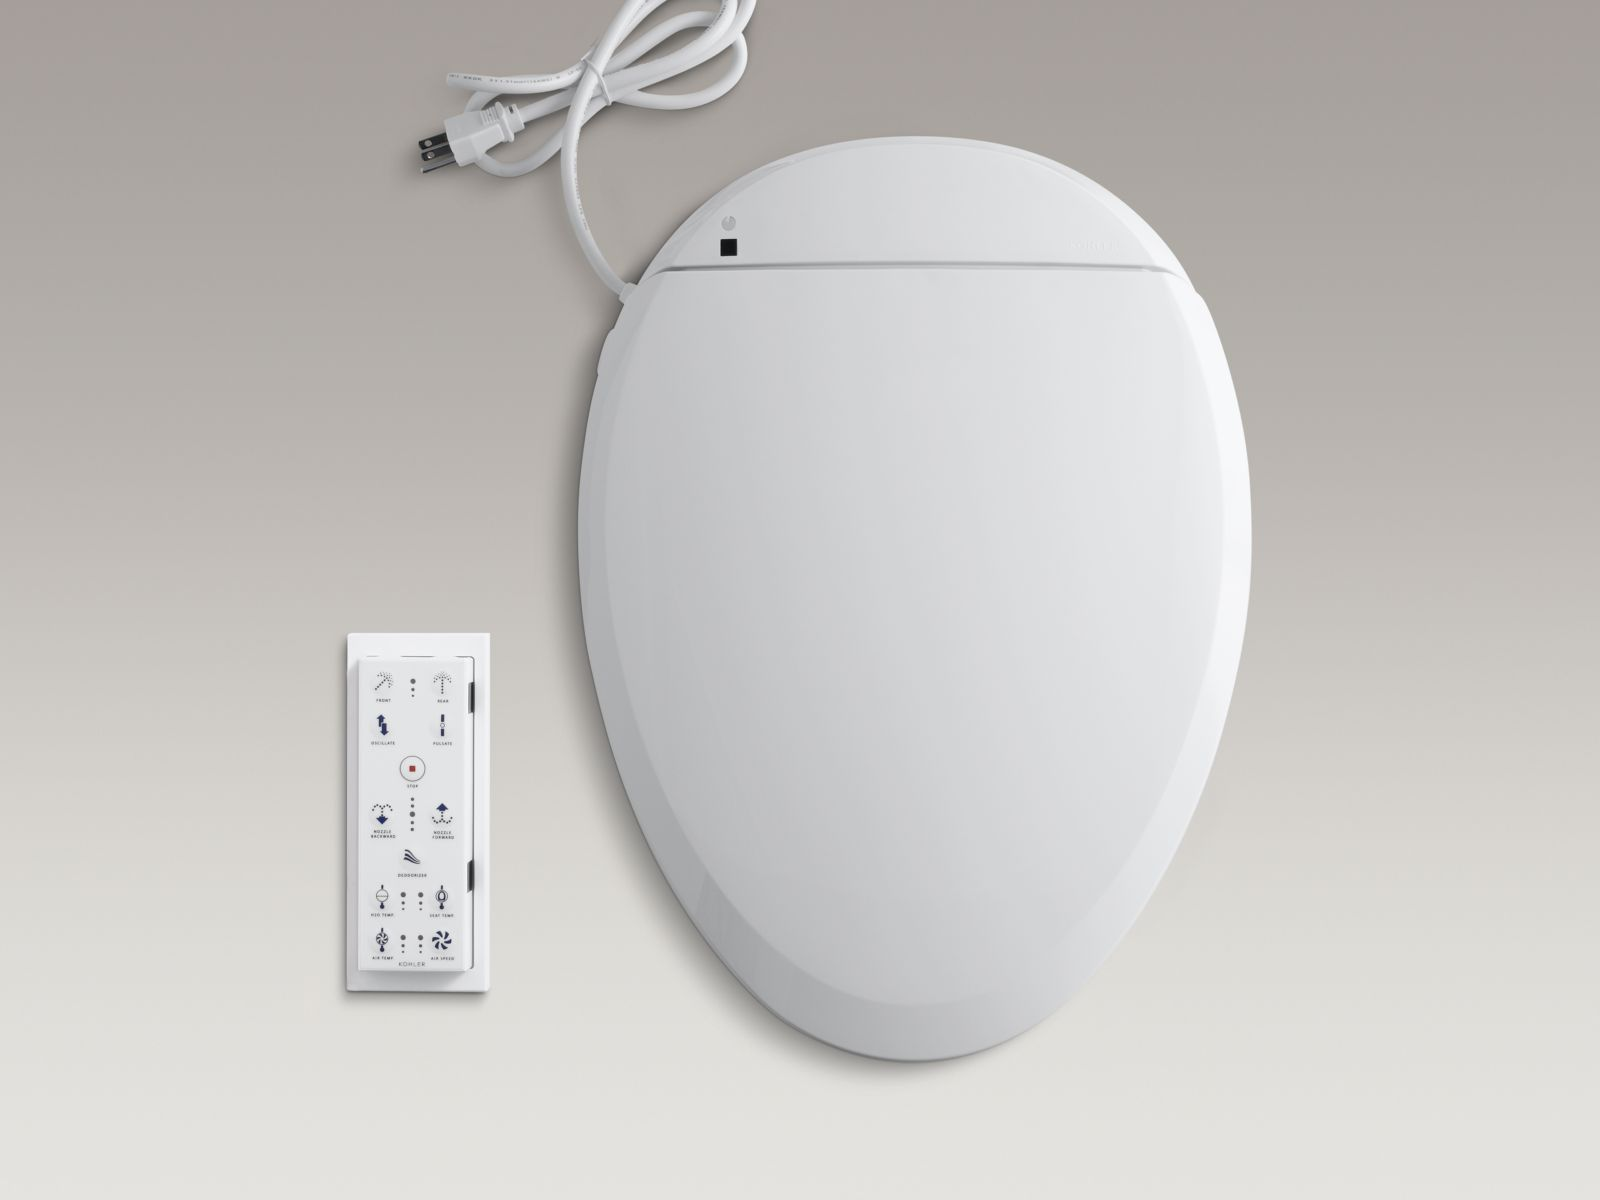 Kohler C3® 201 K-4744-0 elongated bidet toilet seat with in-line heater and remote controls White